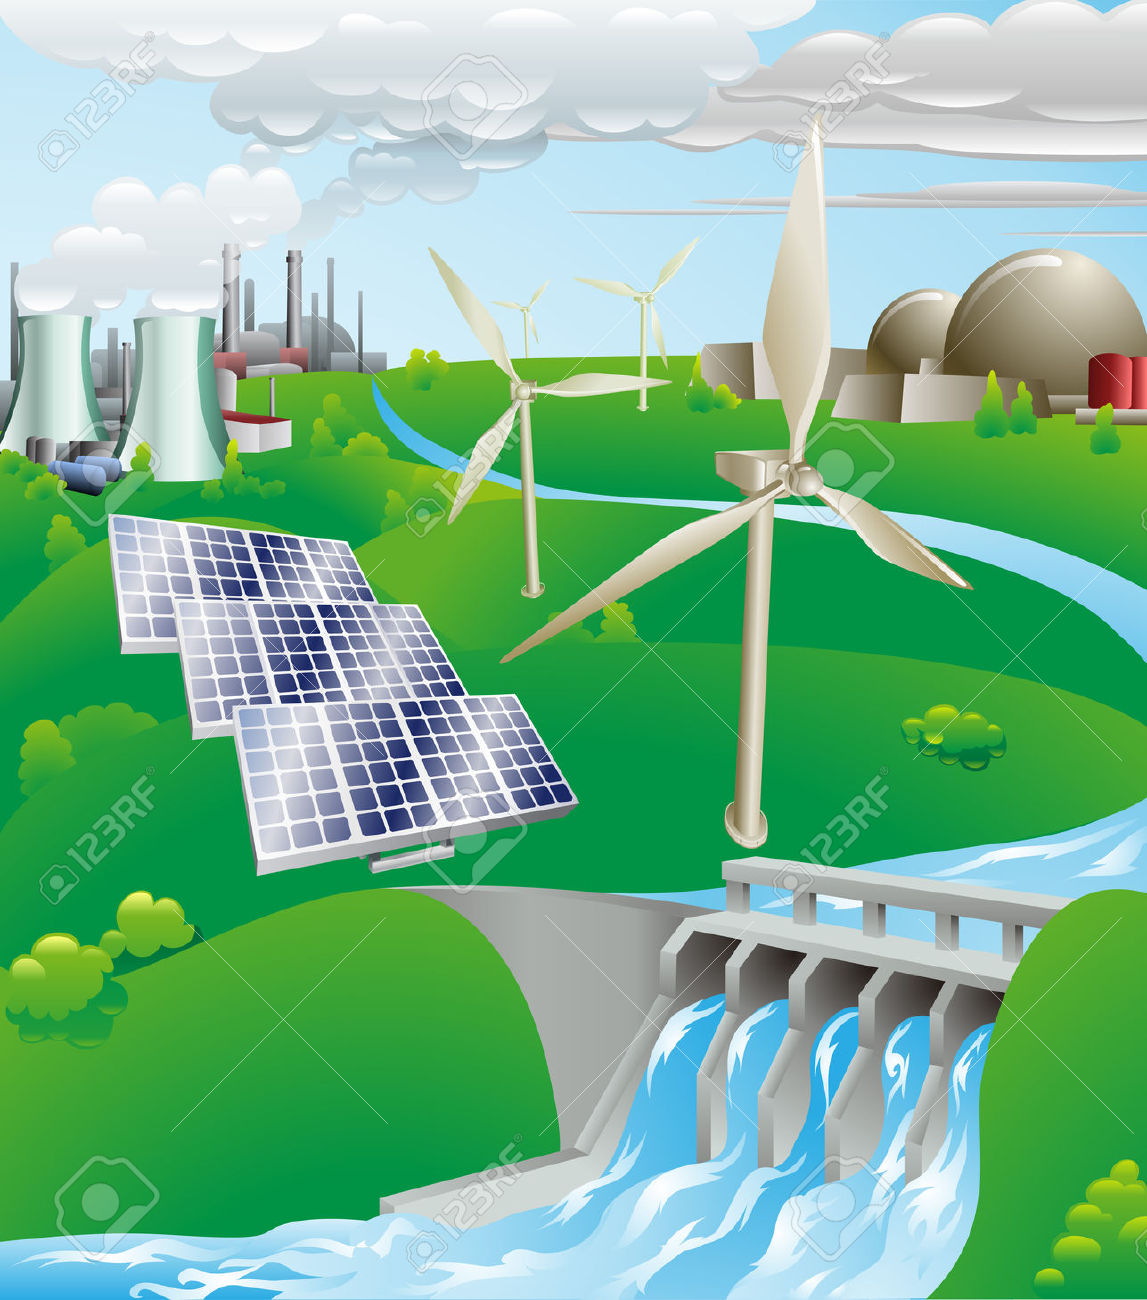 Hydroelectric Power Plant Clipart.